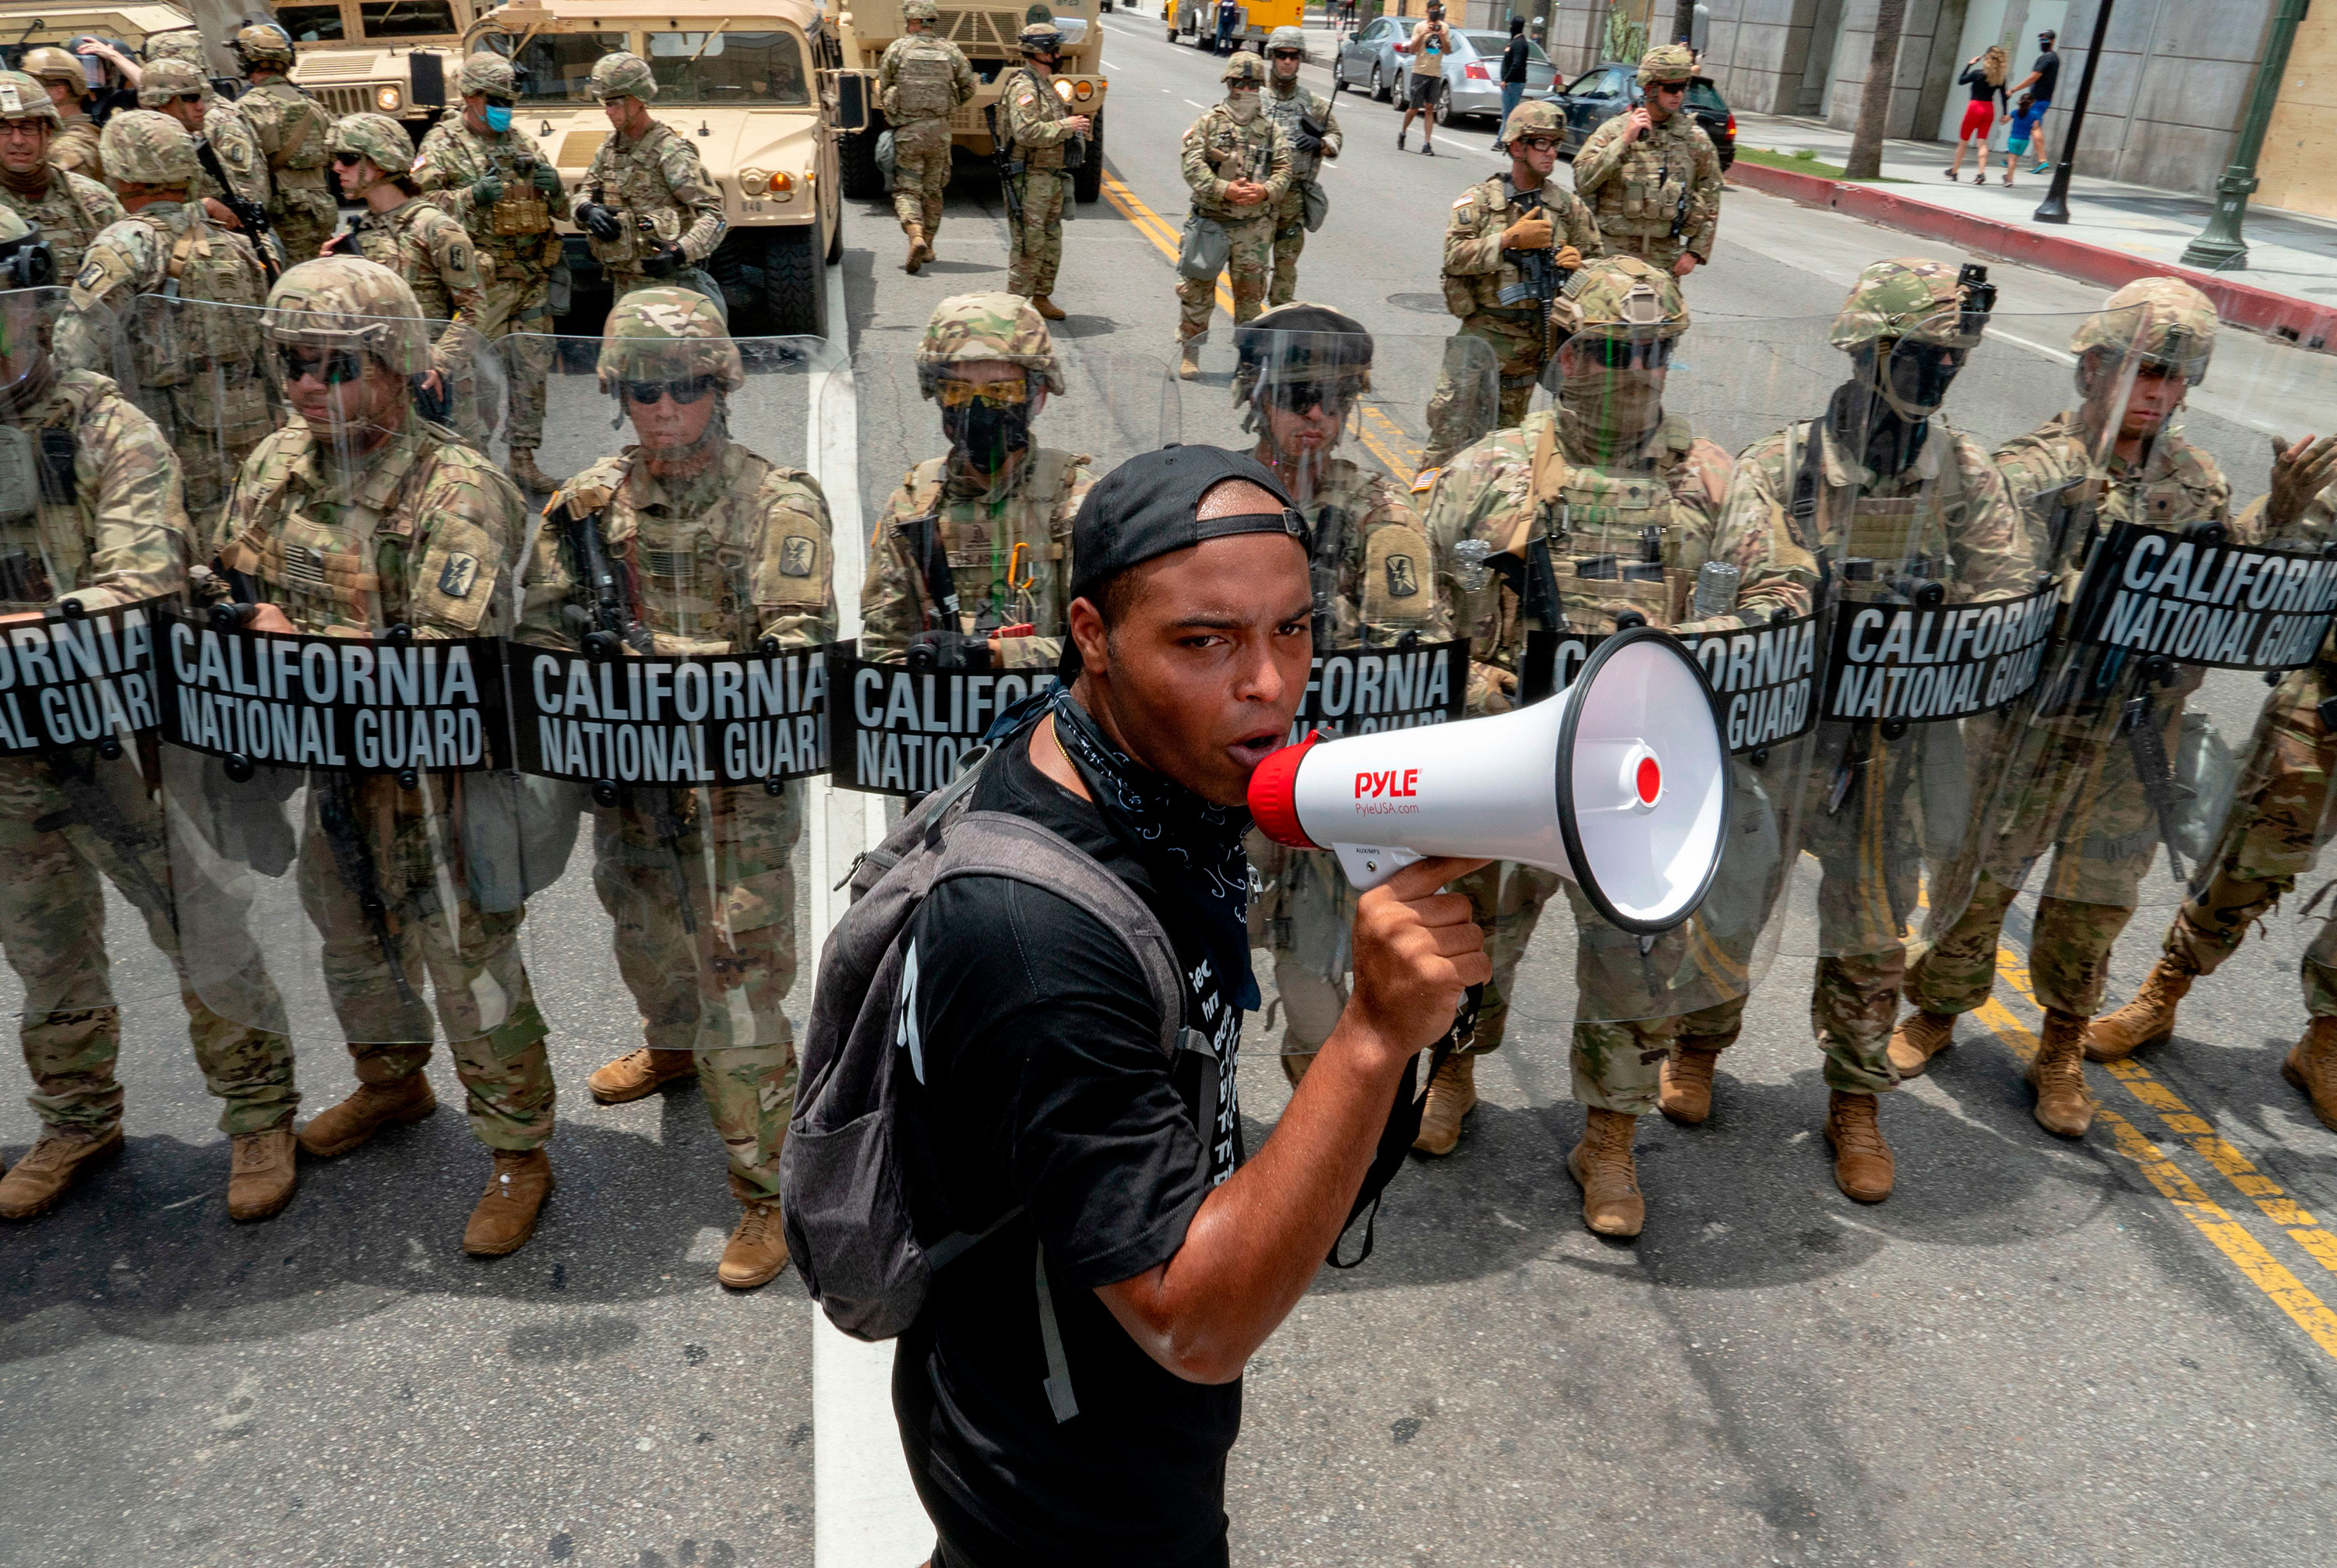 A protester speaks in front of the California National Guard on June 2 in Los Angeles, California.